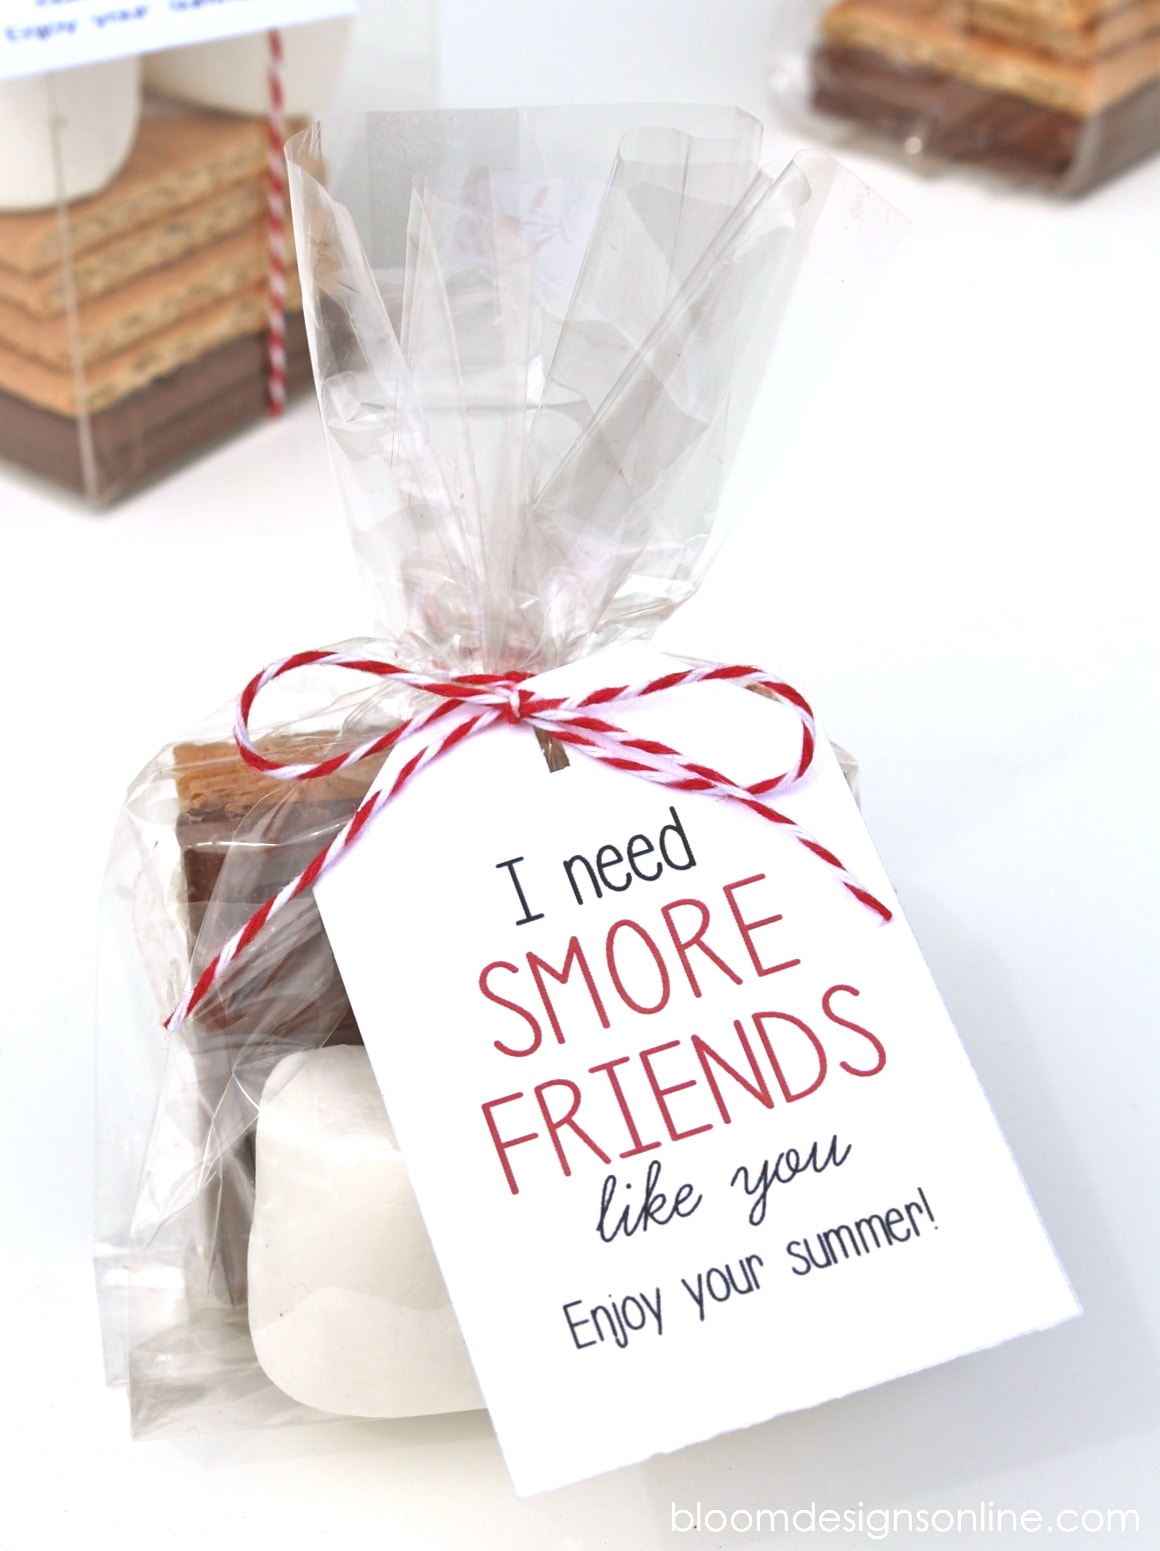 Cute End of the School Year Gift for Friends - I need Smore Friends like you! Free print on { lilluna.com } All your friend needs to make a delicious smore.